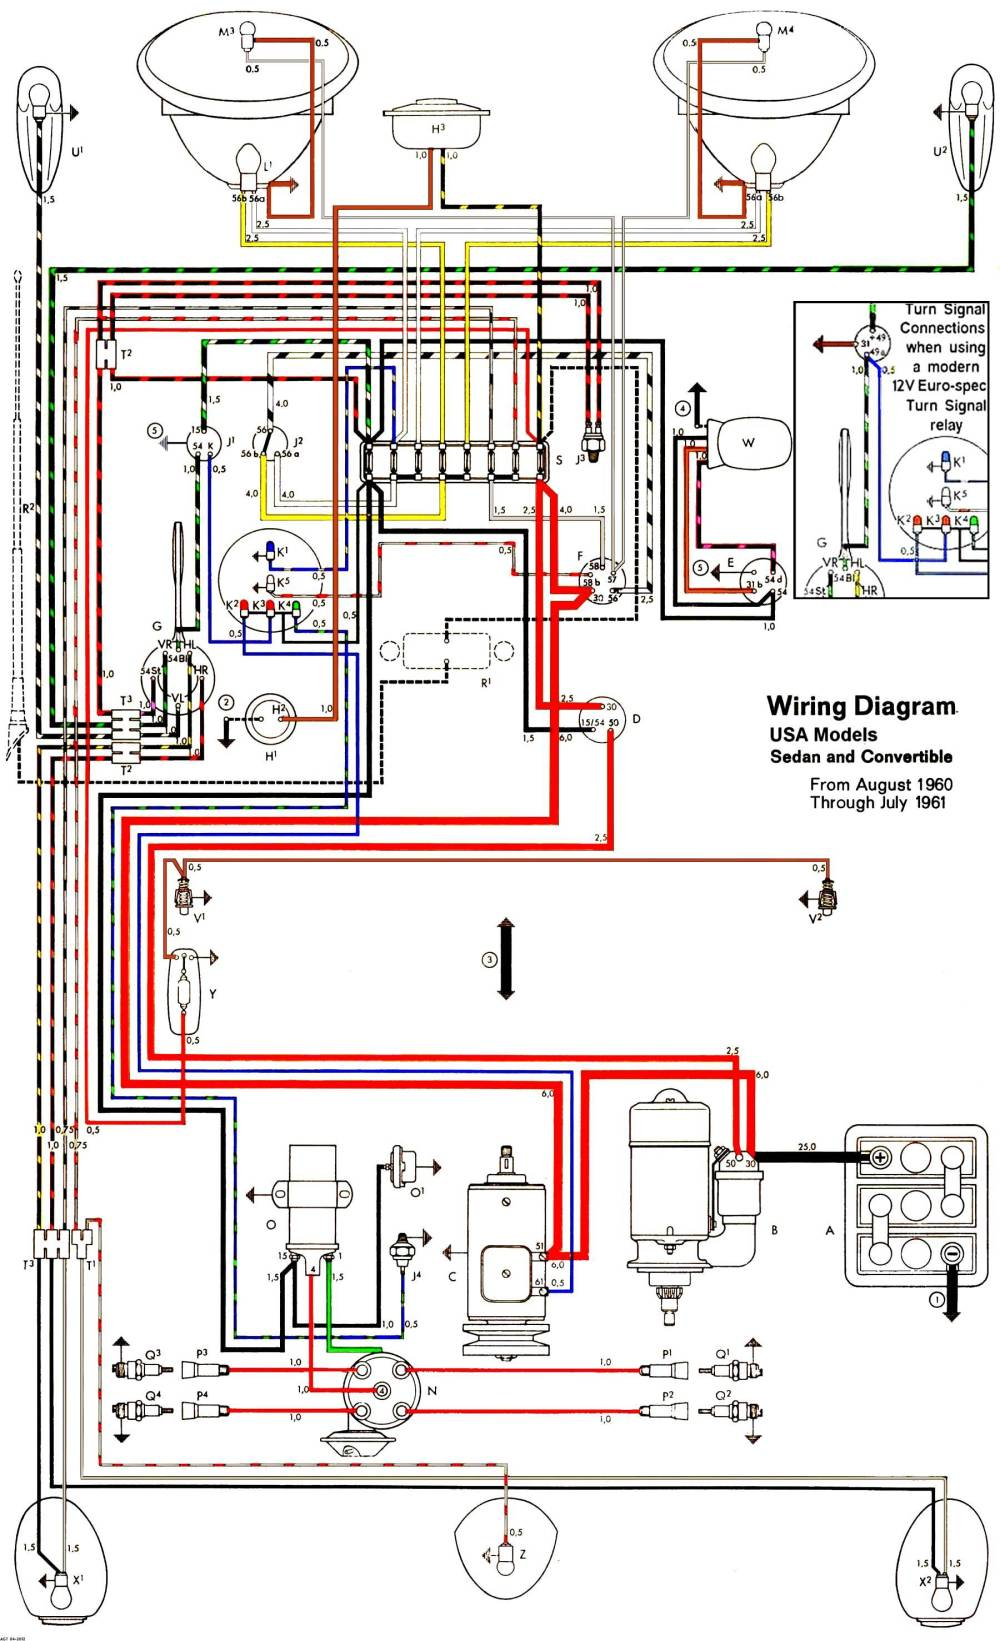 medium resolution of 1970 vw beetle wiring diagram wiring diagram schematics electrical wiring types 72 type 1 wiring diagram